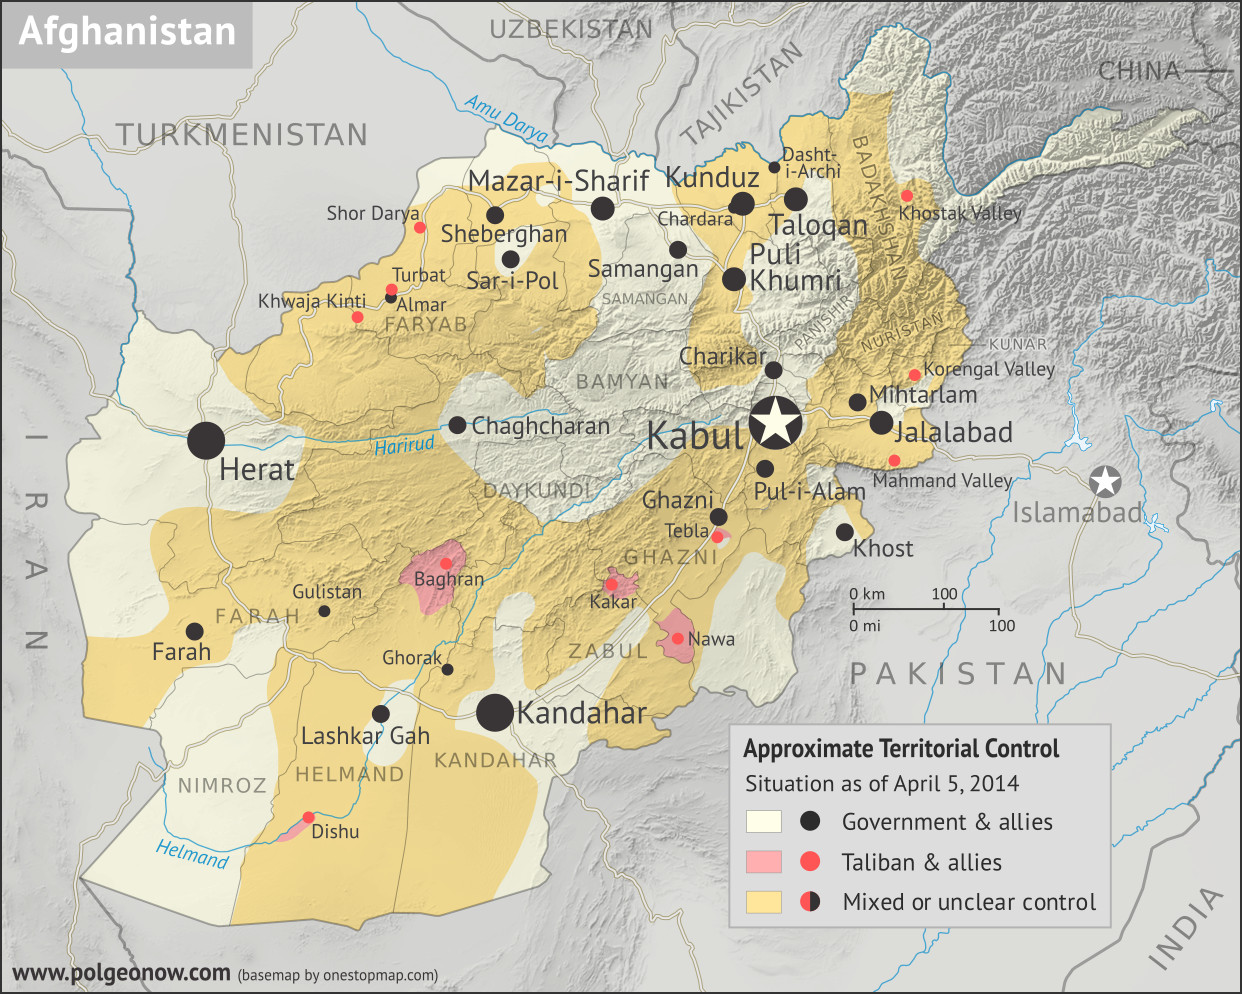 Where in Afghanistan is the war? Map of Taliban control in Afghanistan in April 2014, after the troop surge and before withdrawal was completed. Also marks areas of government control and unclear or mixed control. Includes all of Afghanistan's major cities, plus selected towns, including the four districts known to be controlled by the Taliban at the time: Dishu and Baghran in Helmand province, Kakar (Khak-e-Afghan) in Zabul province, and Nawa in Ghazni province. Colorblind accessible.